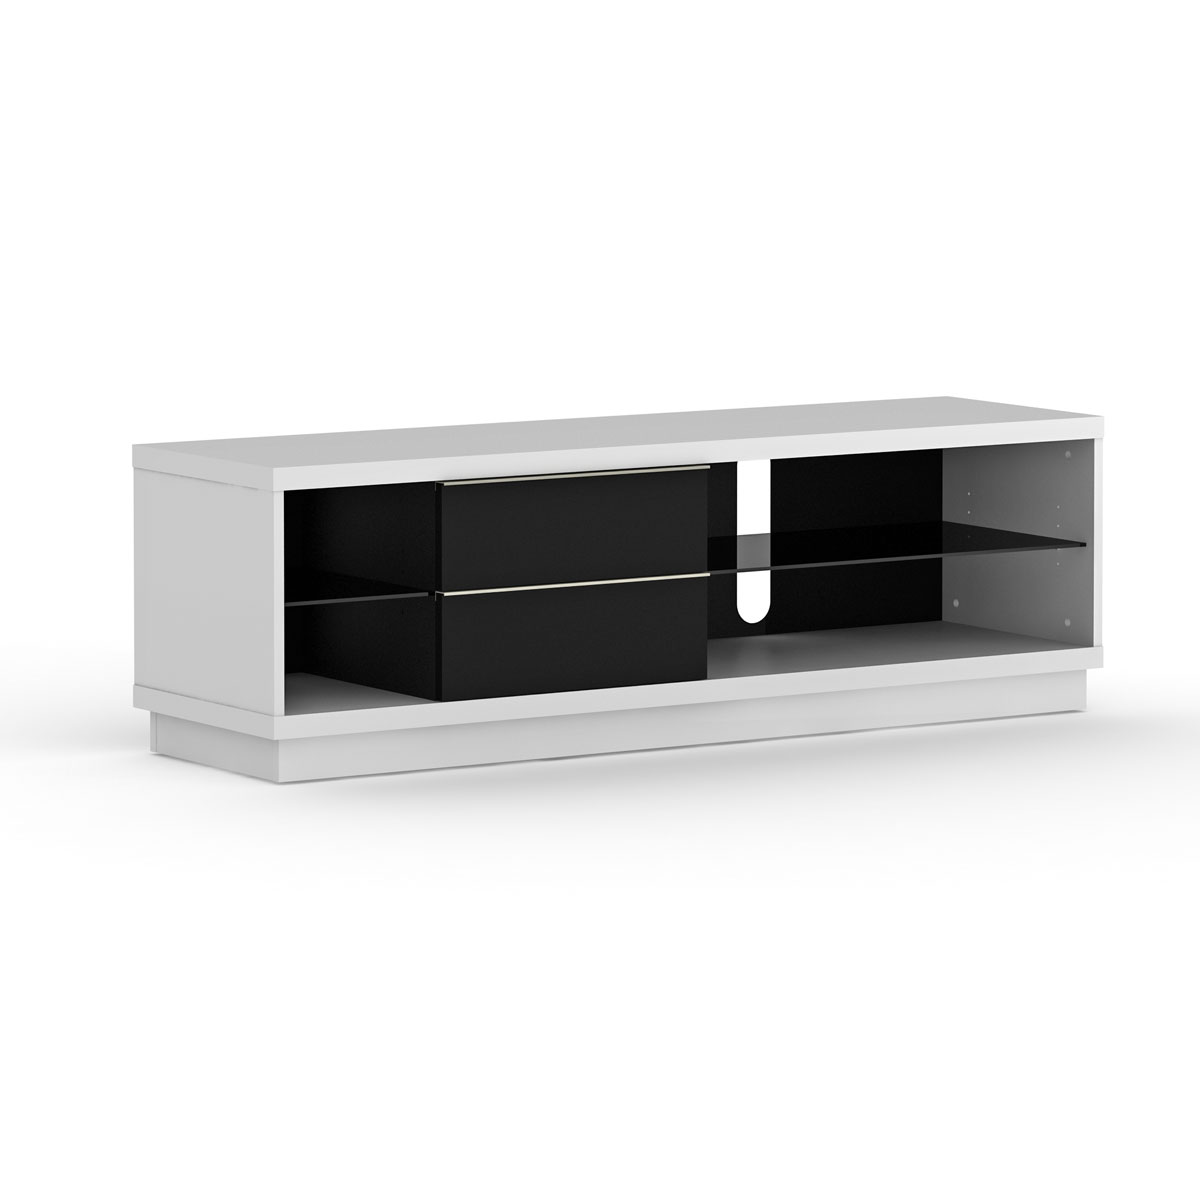 elmob harmony ha 160 03 blanc meuble tv elmob sur. Black Bedroom Furniture Sets. Home Design Ideas